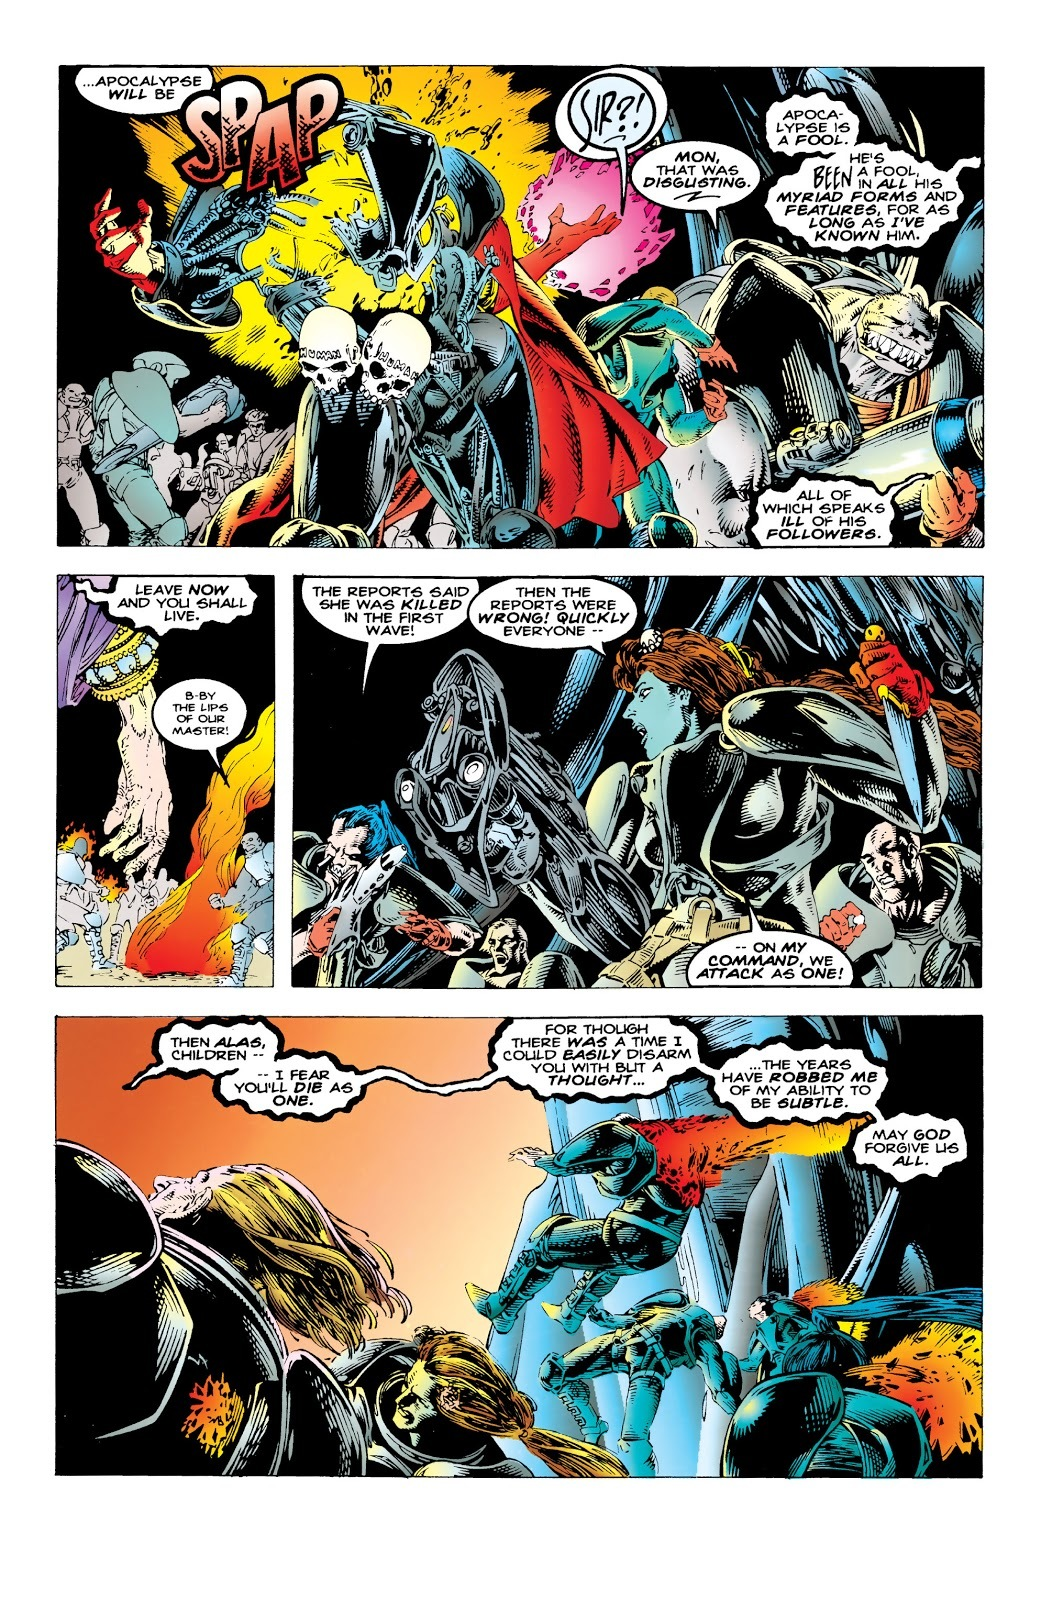 Despite suffering a massive wound from a surprise attack, Mother Askani utterly destroys Apocalypse's elite forces with a wave of her hand.